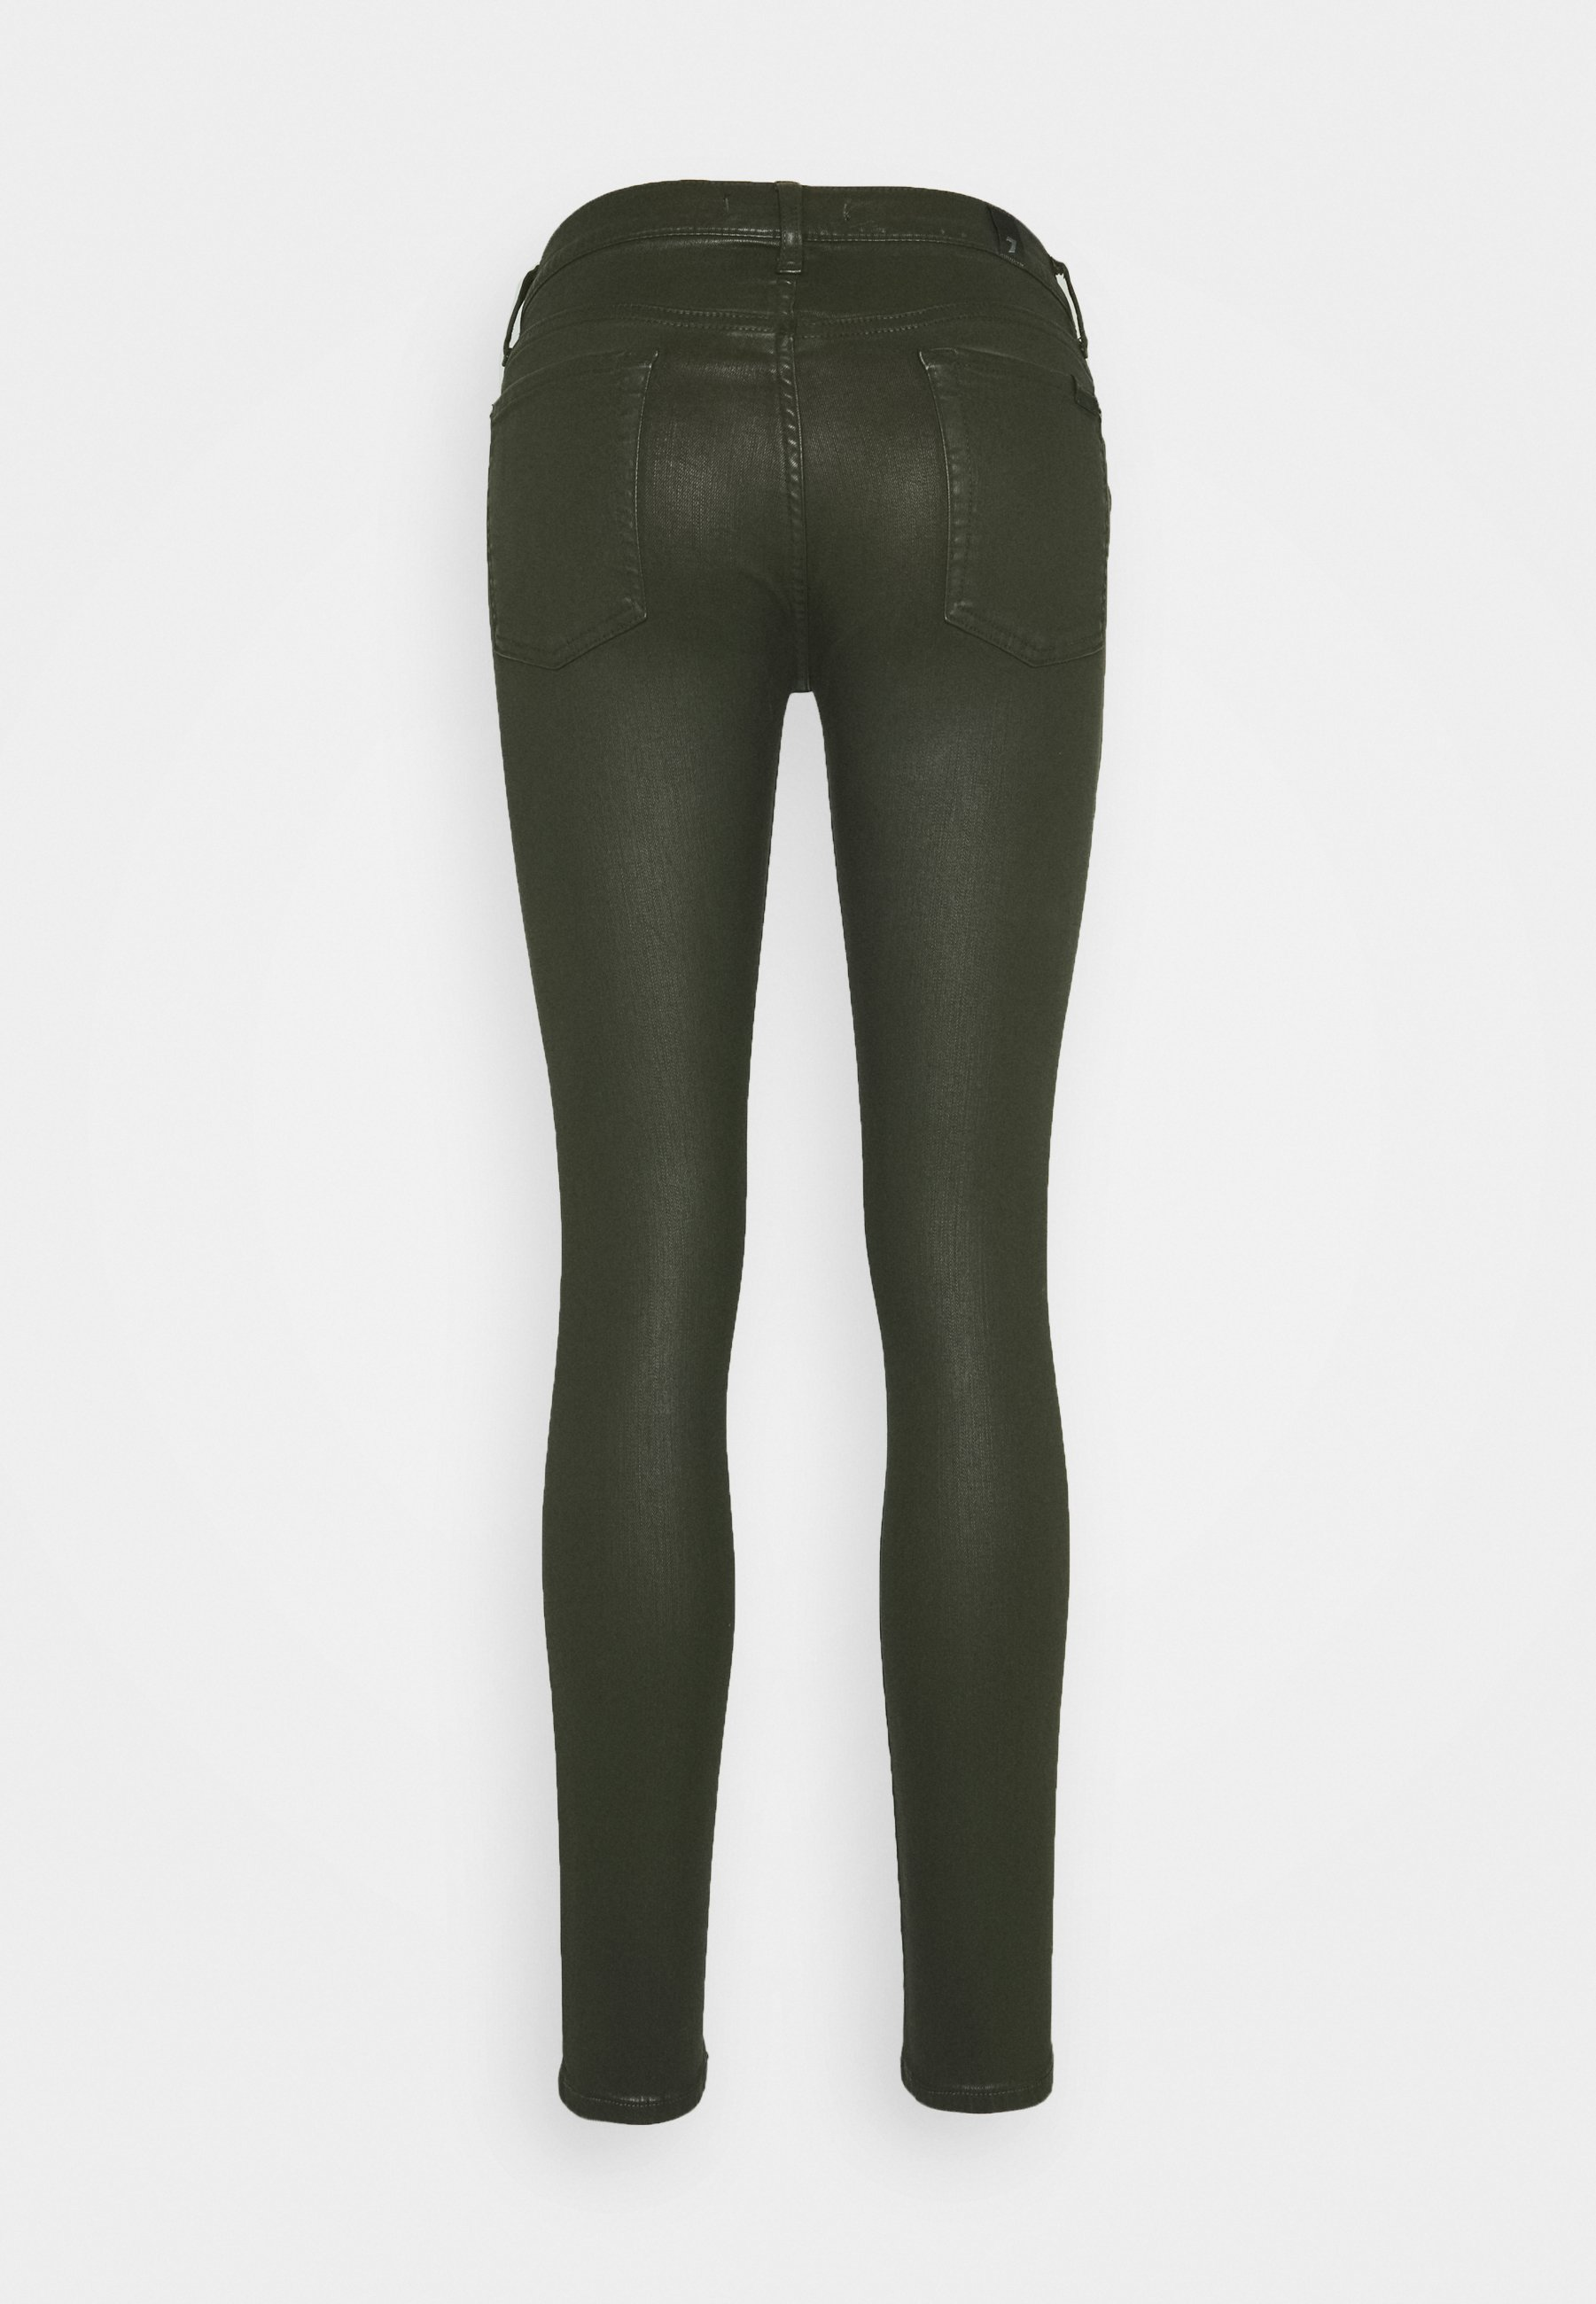 7 For All Mankind Jeans Skinny Fit - Army